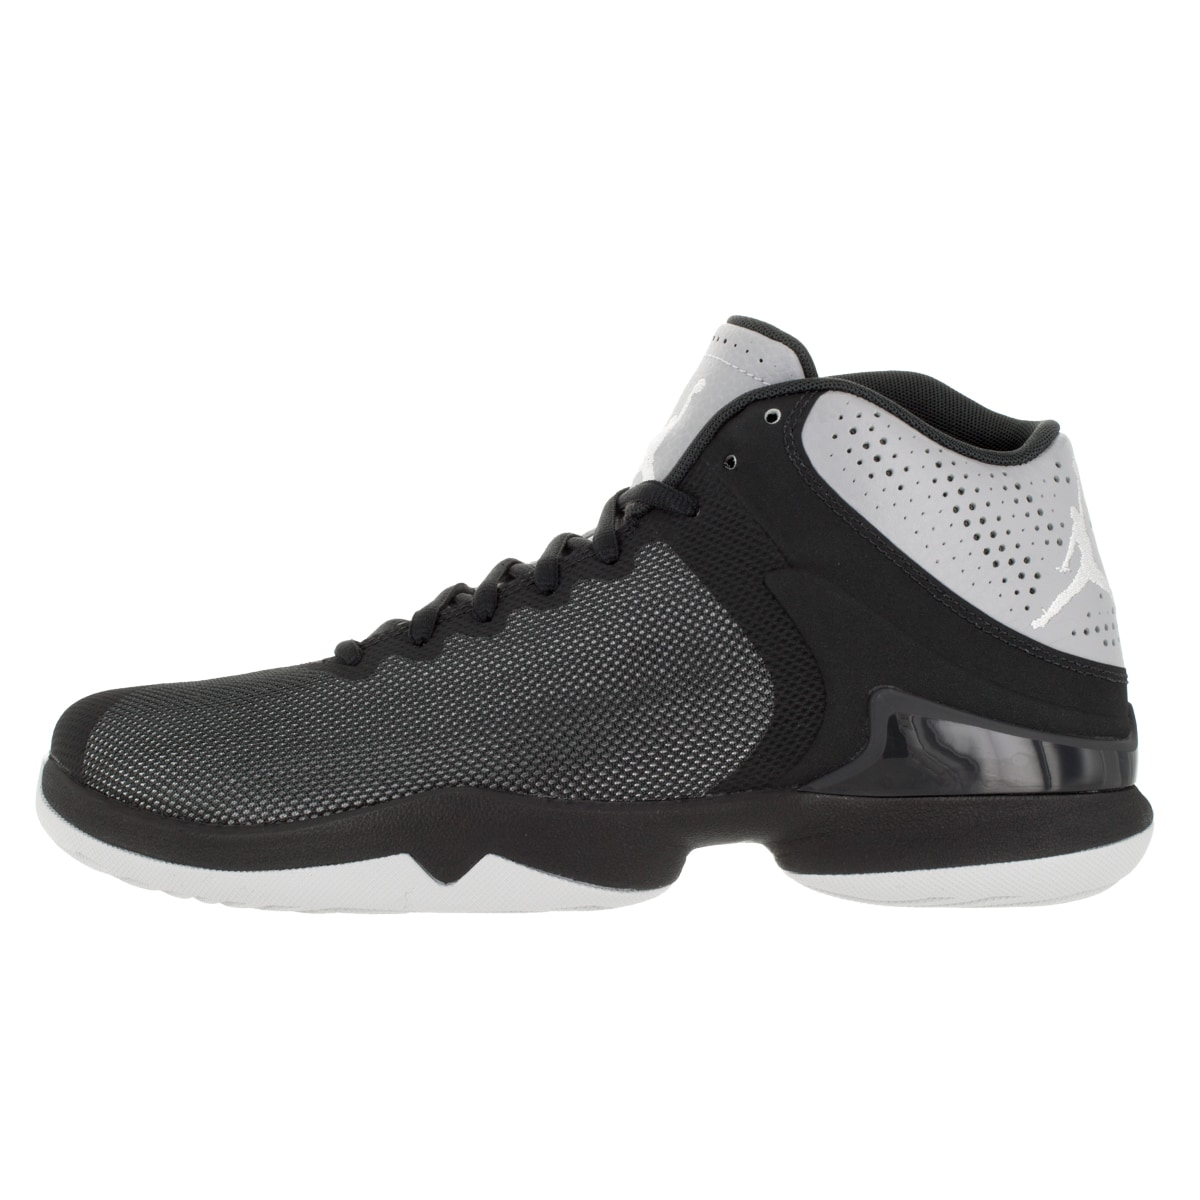 Nike Jordan Men's Jordan Super.Fly 4 Po Wolf Grey/White/Anthracite/Infrared  23 Basketball Shoe - Free Shipping Today - Overstock.com - 19151463